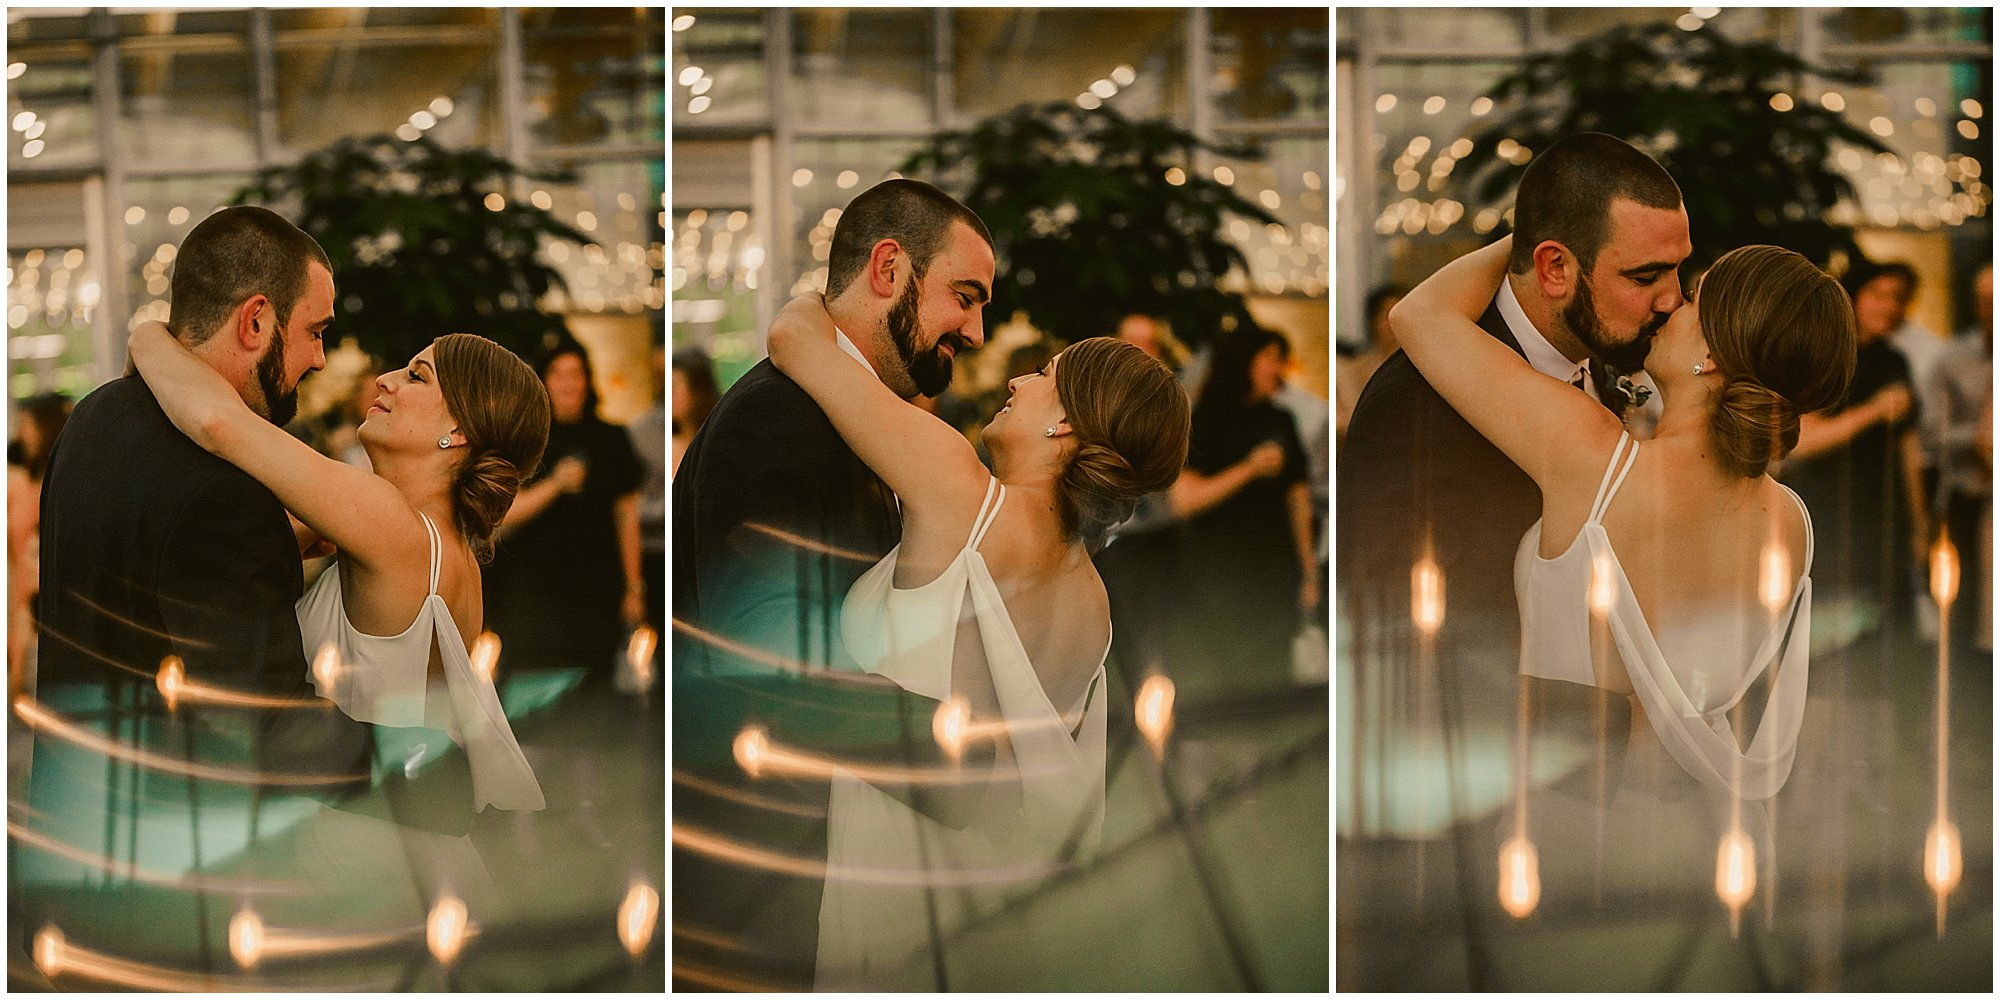 prism first dance wedding photography